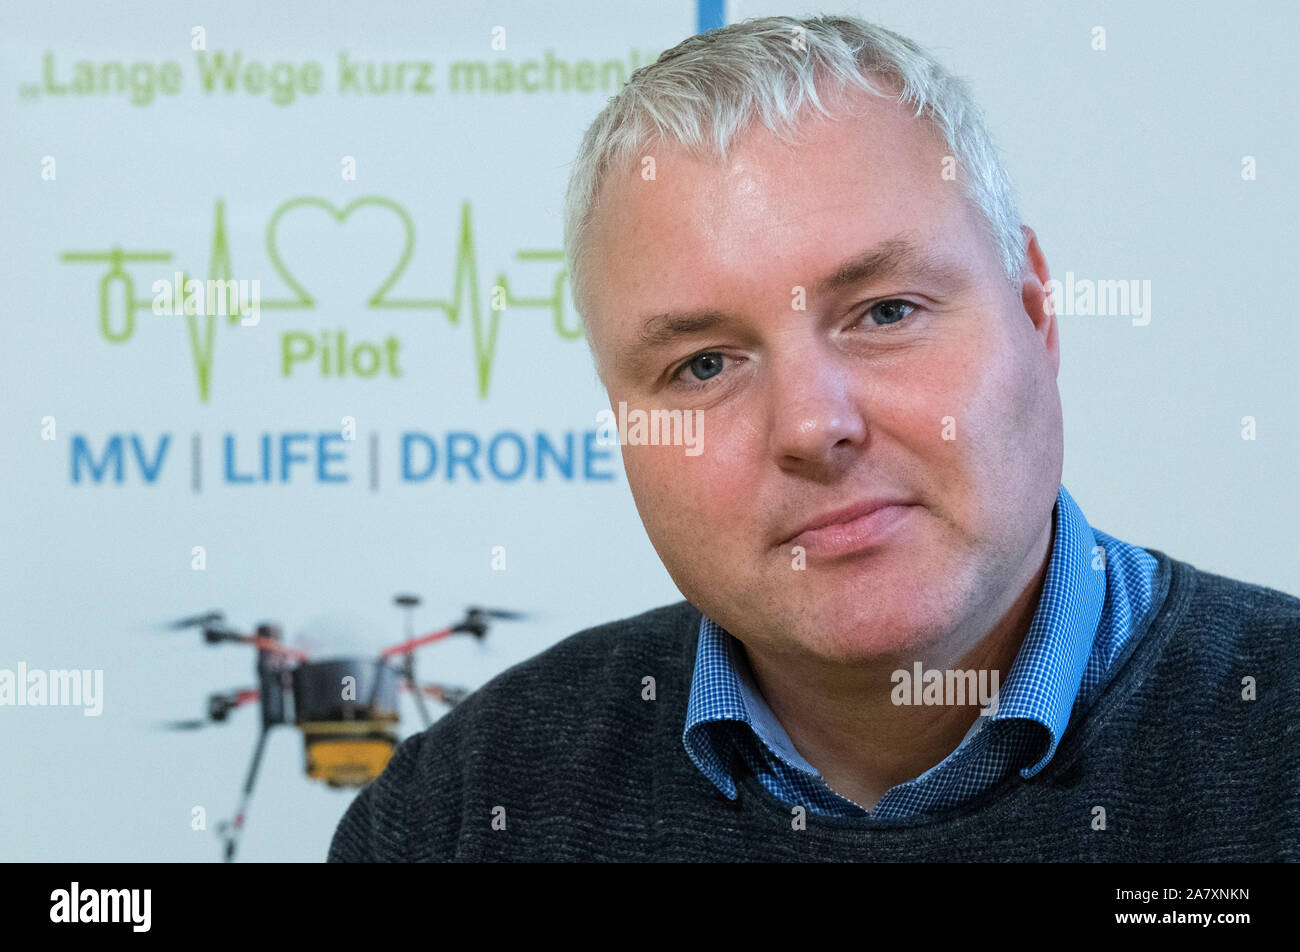 Penkun, Germany. 04th Nov, 2019. Klaus Hahnenkamp, Director of the Clinic for Anaesthesiology at Greifswald University Hospital, admitted to Penkun. A project team at Greifswald University Hospital is planning to fly defibrillators with drones to patients and medically trained first responders. The aim is to develop a system that deploys drones in such a way that they close the gaps in primary care in the countryside. In the district of Vorpommern-Greifswald a feasibility study is now starting. Credit: Stefan Sauer/dpa-Zentralbild/dpa/Alamy Live News Stock Photo